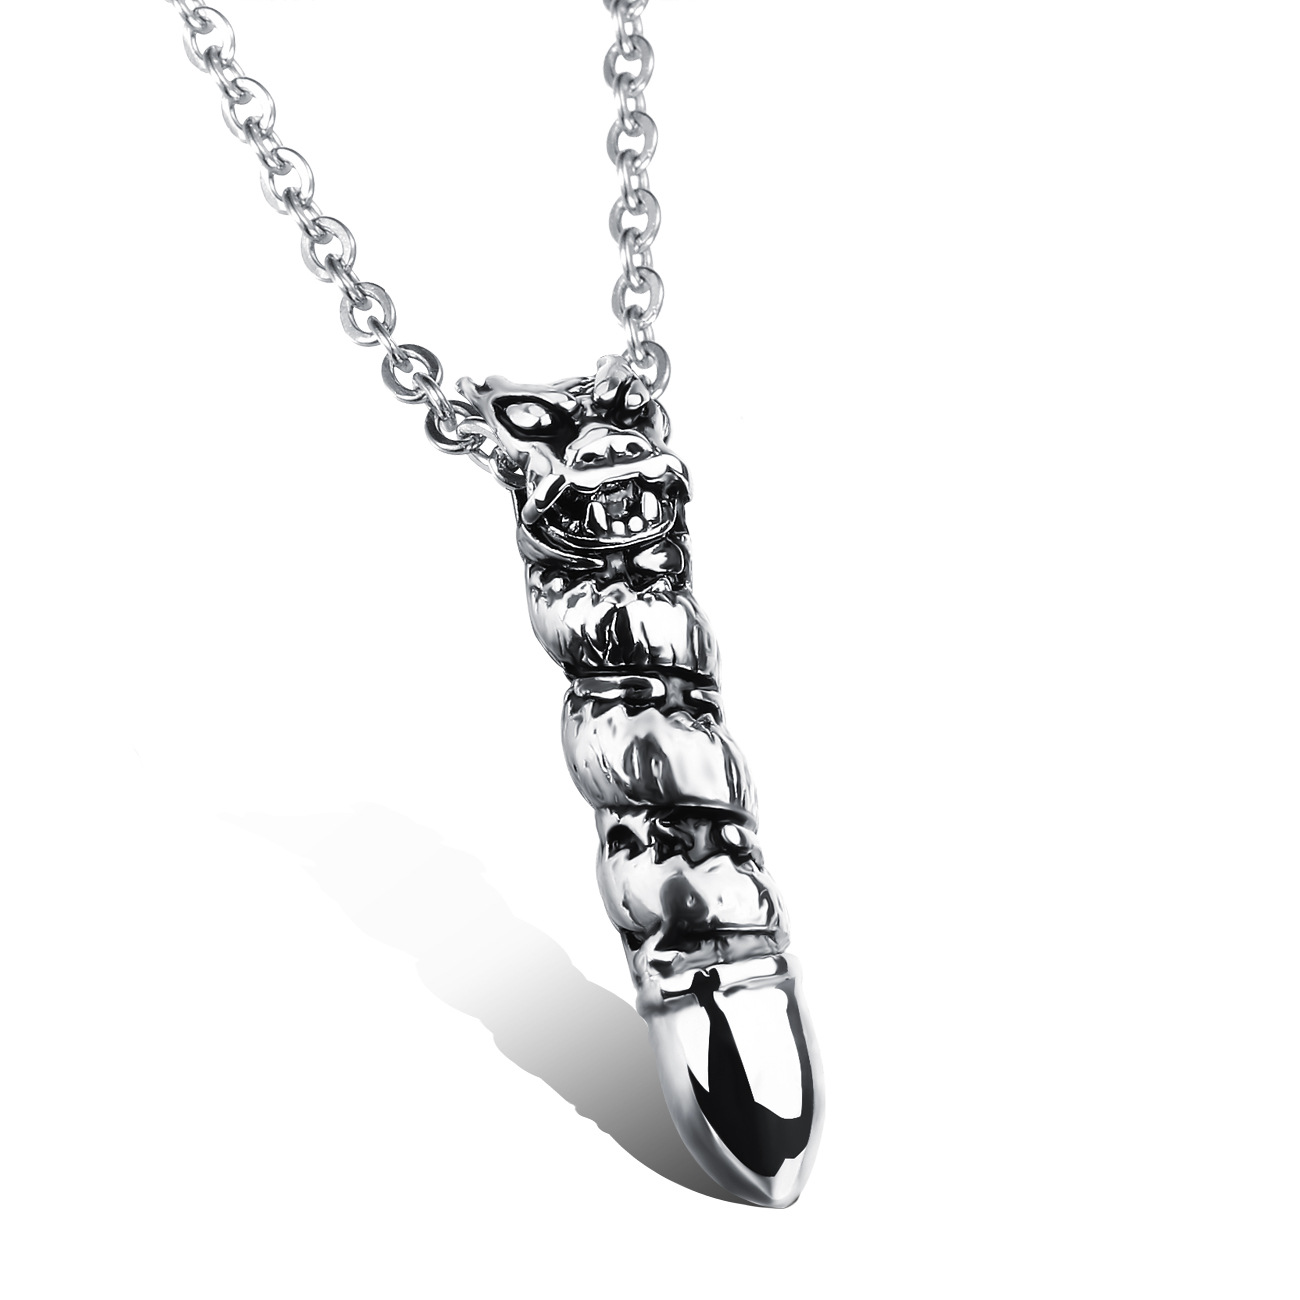 Fashion Retro Dragon Man Pendant Necklaces Personality Stainless Steel Mens Friendship Jewelry Link Chain Rock Style(China (Mainland))